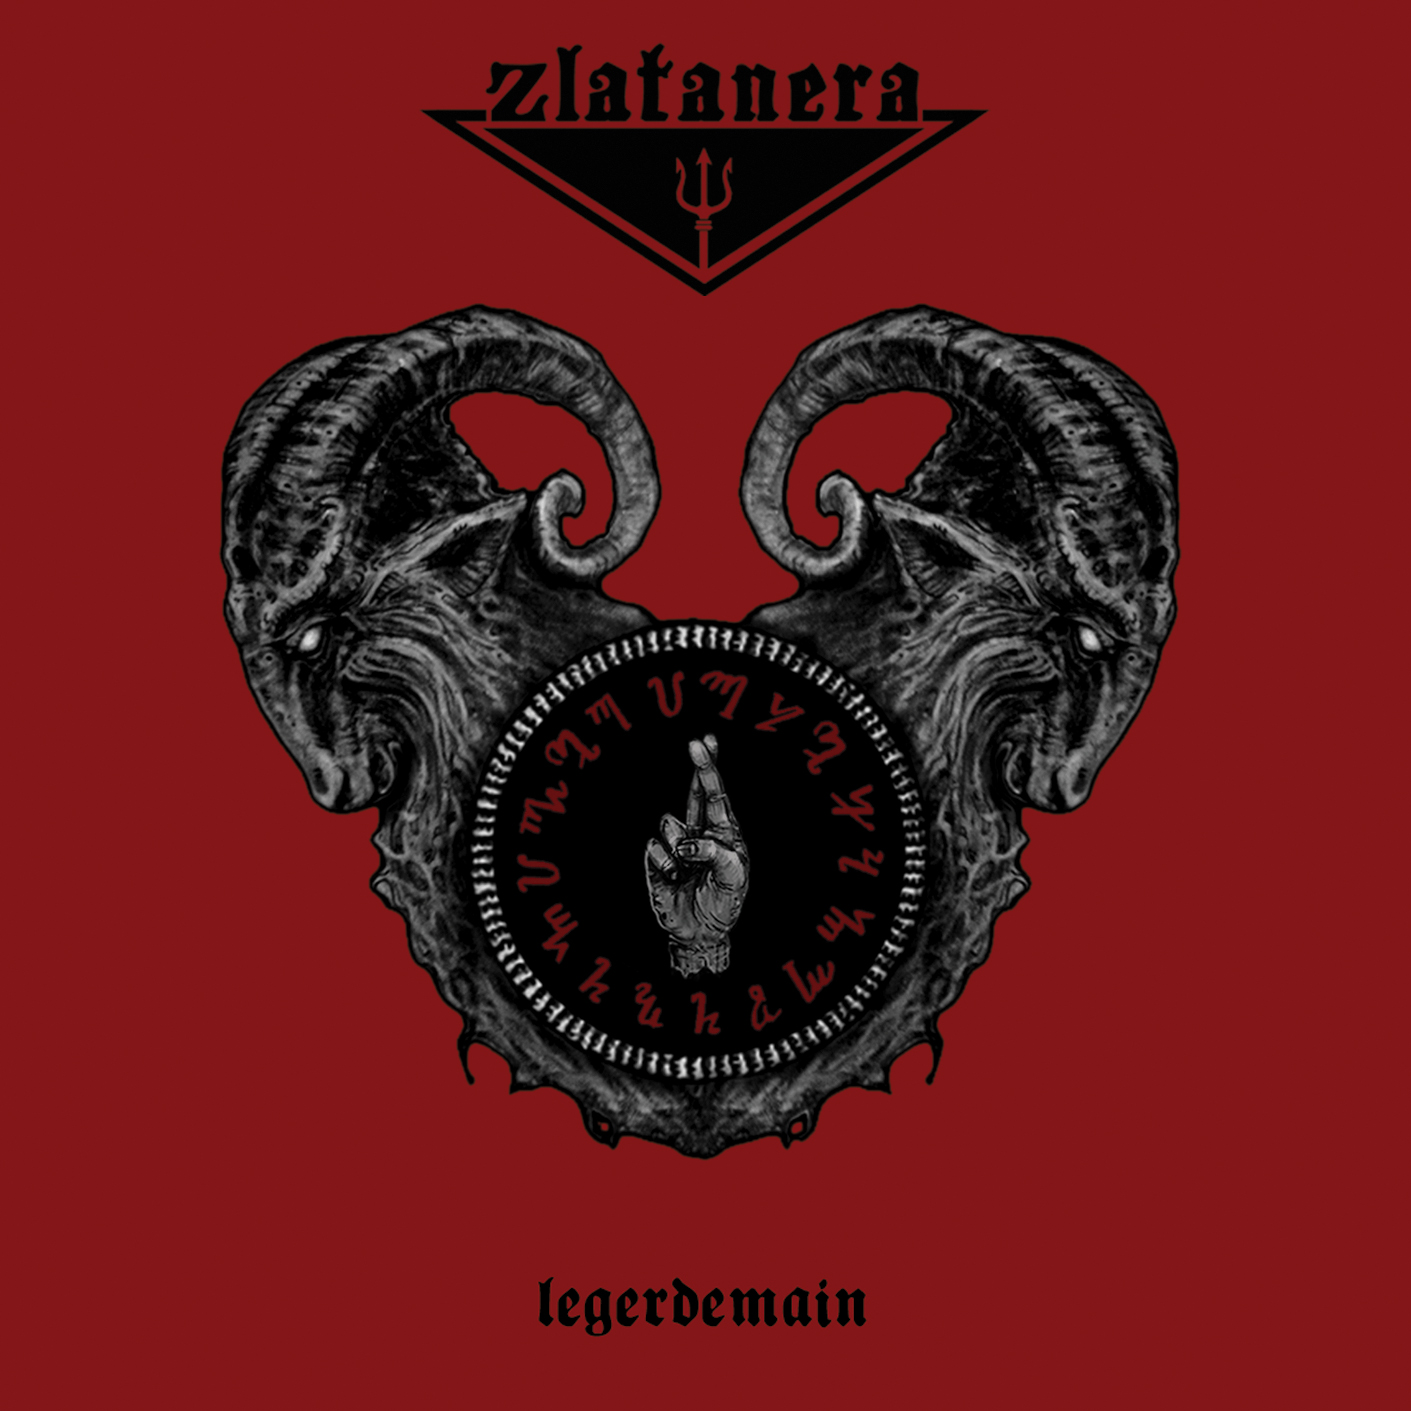 Zlatanera Legerdemain Artwork